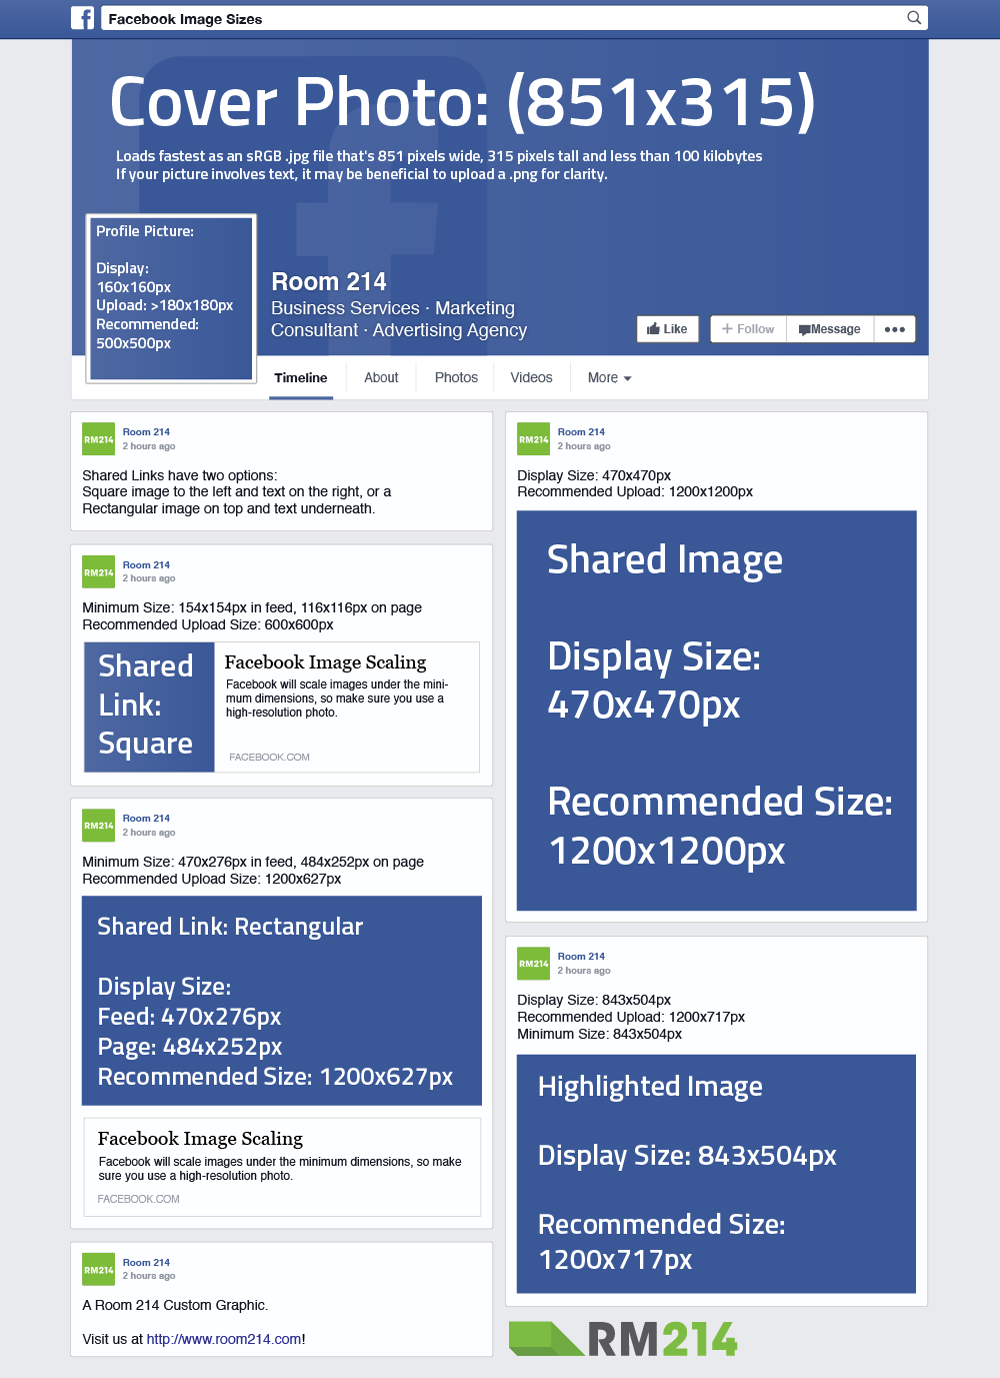 Recommended Dimensions For Facebook Images Facebook Image